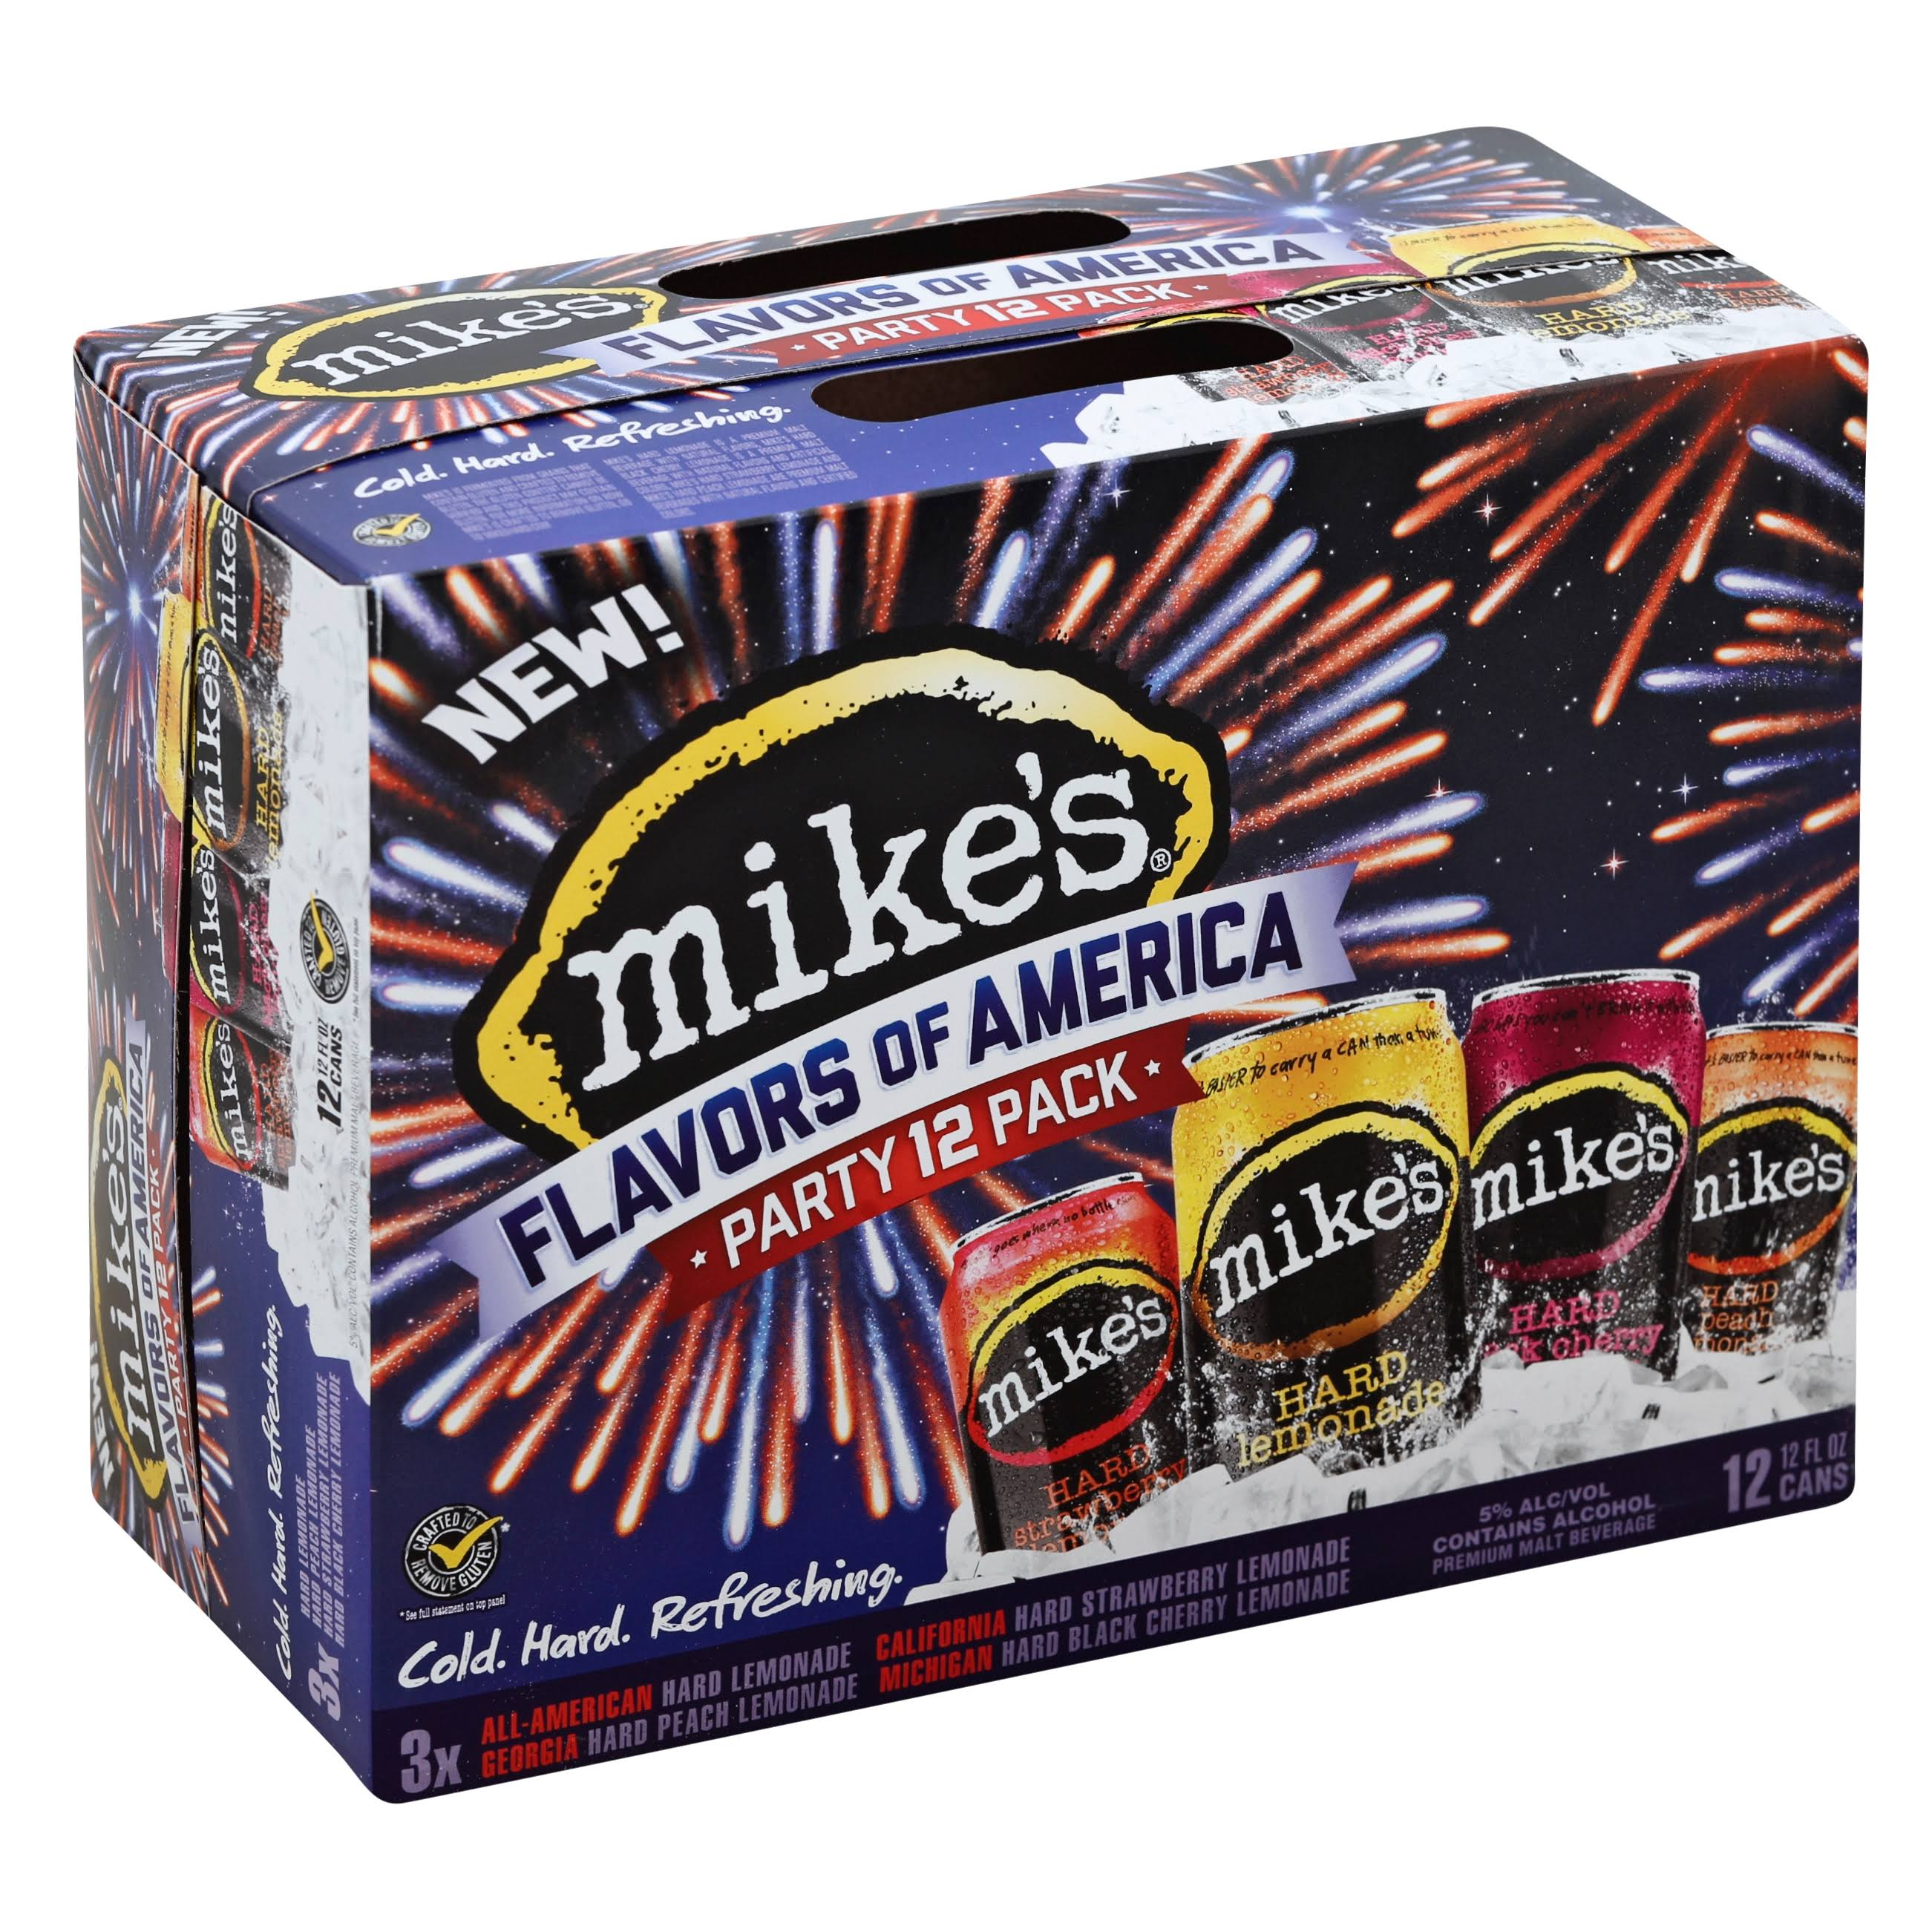 Mike's Hard Flavors Of America Party Pack Malt Beverages - 12 Cans